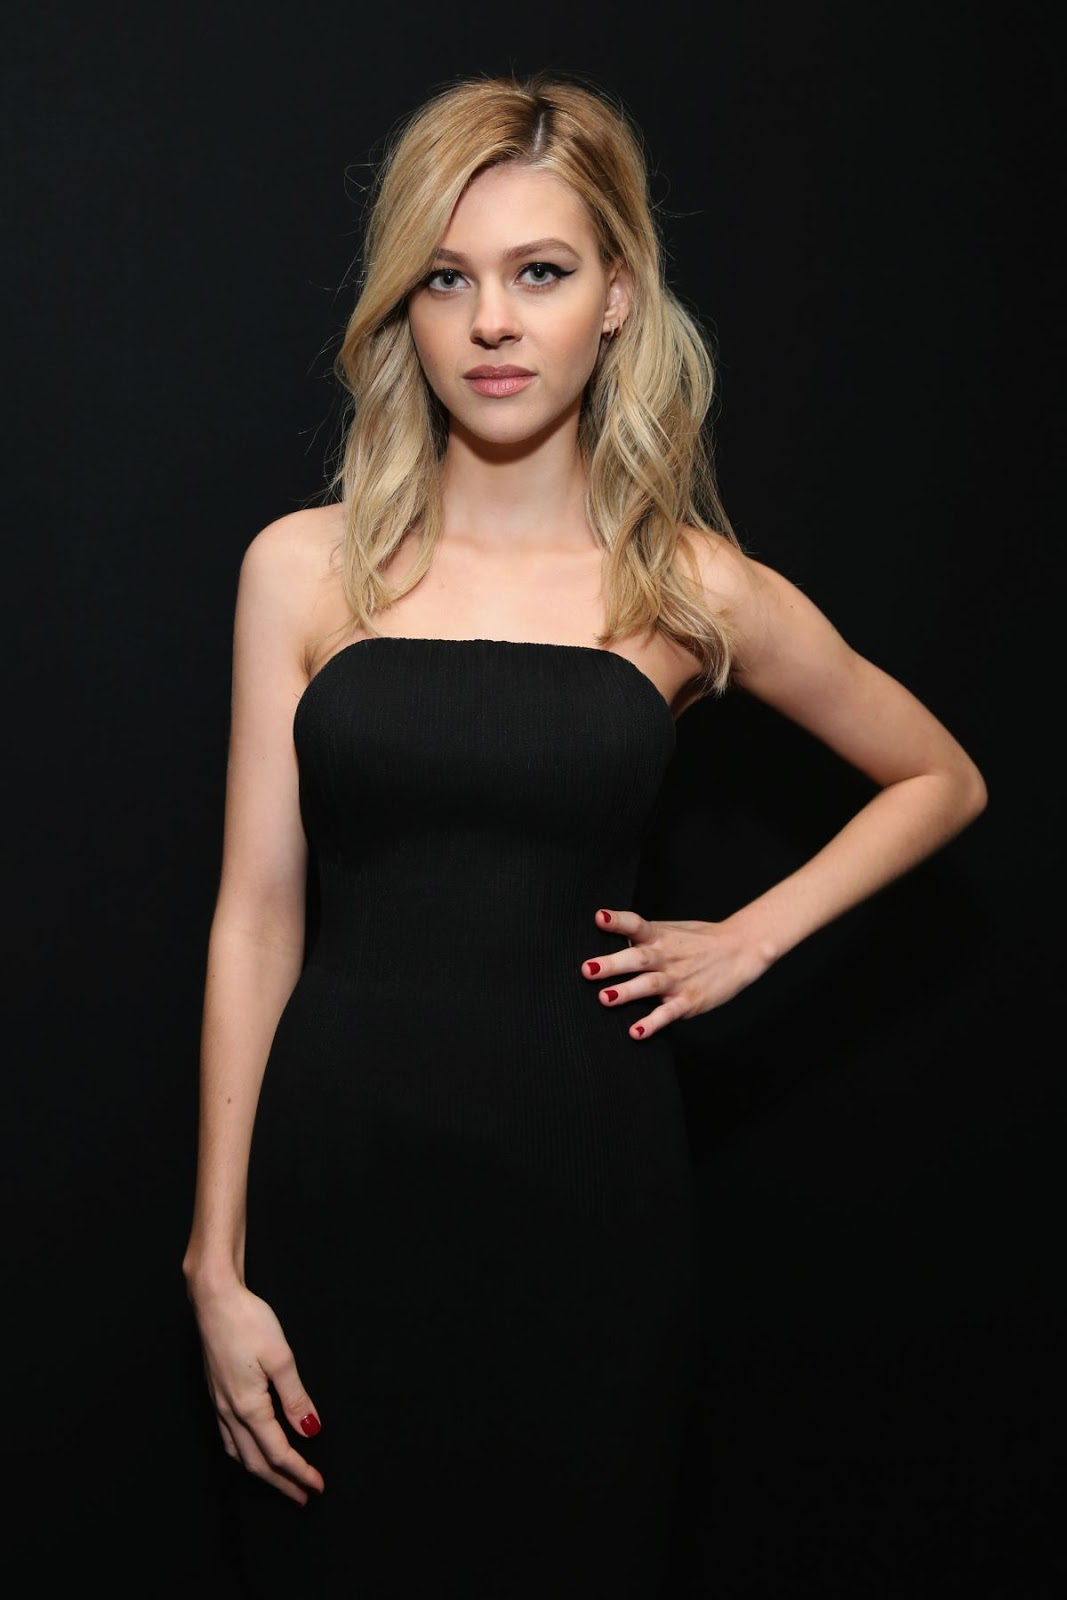 Transformers actress Nicola Peltz Full HD Photos & Wallpapers